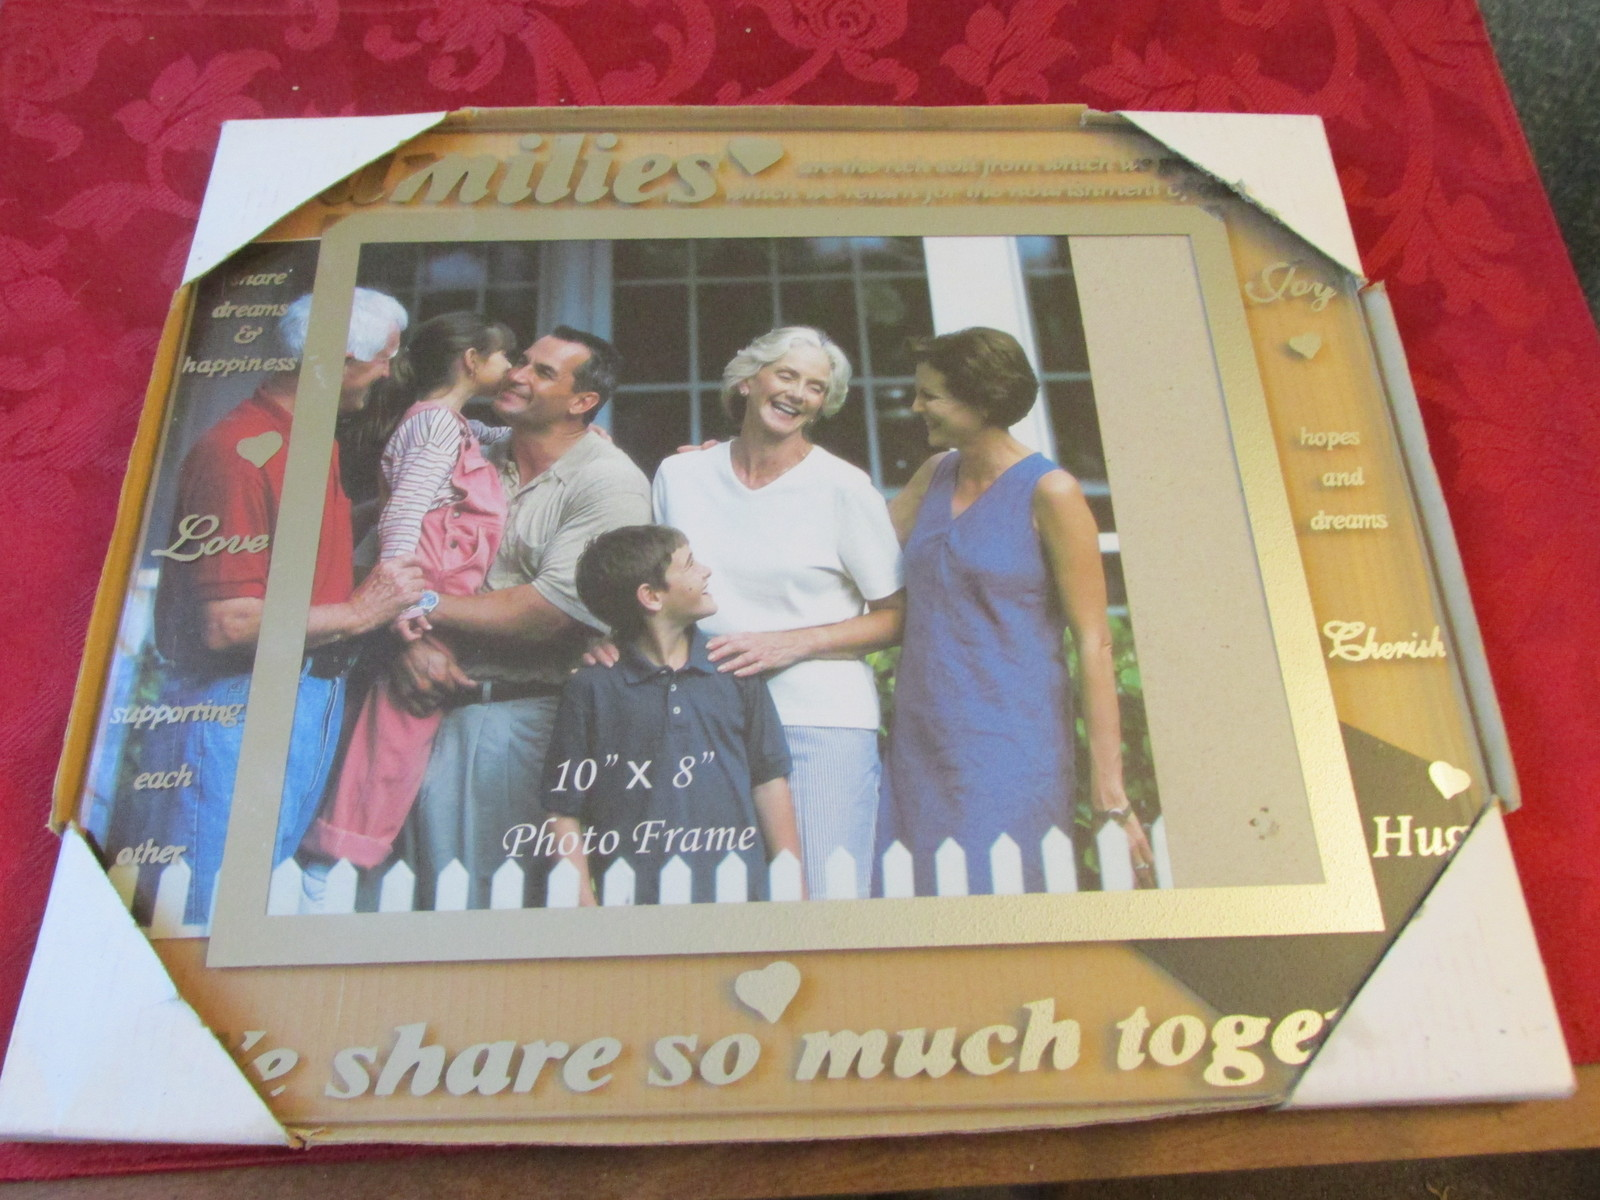 Families We Share So Much Together 8x10 Picture Frame